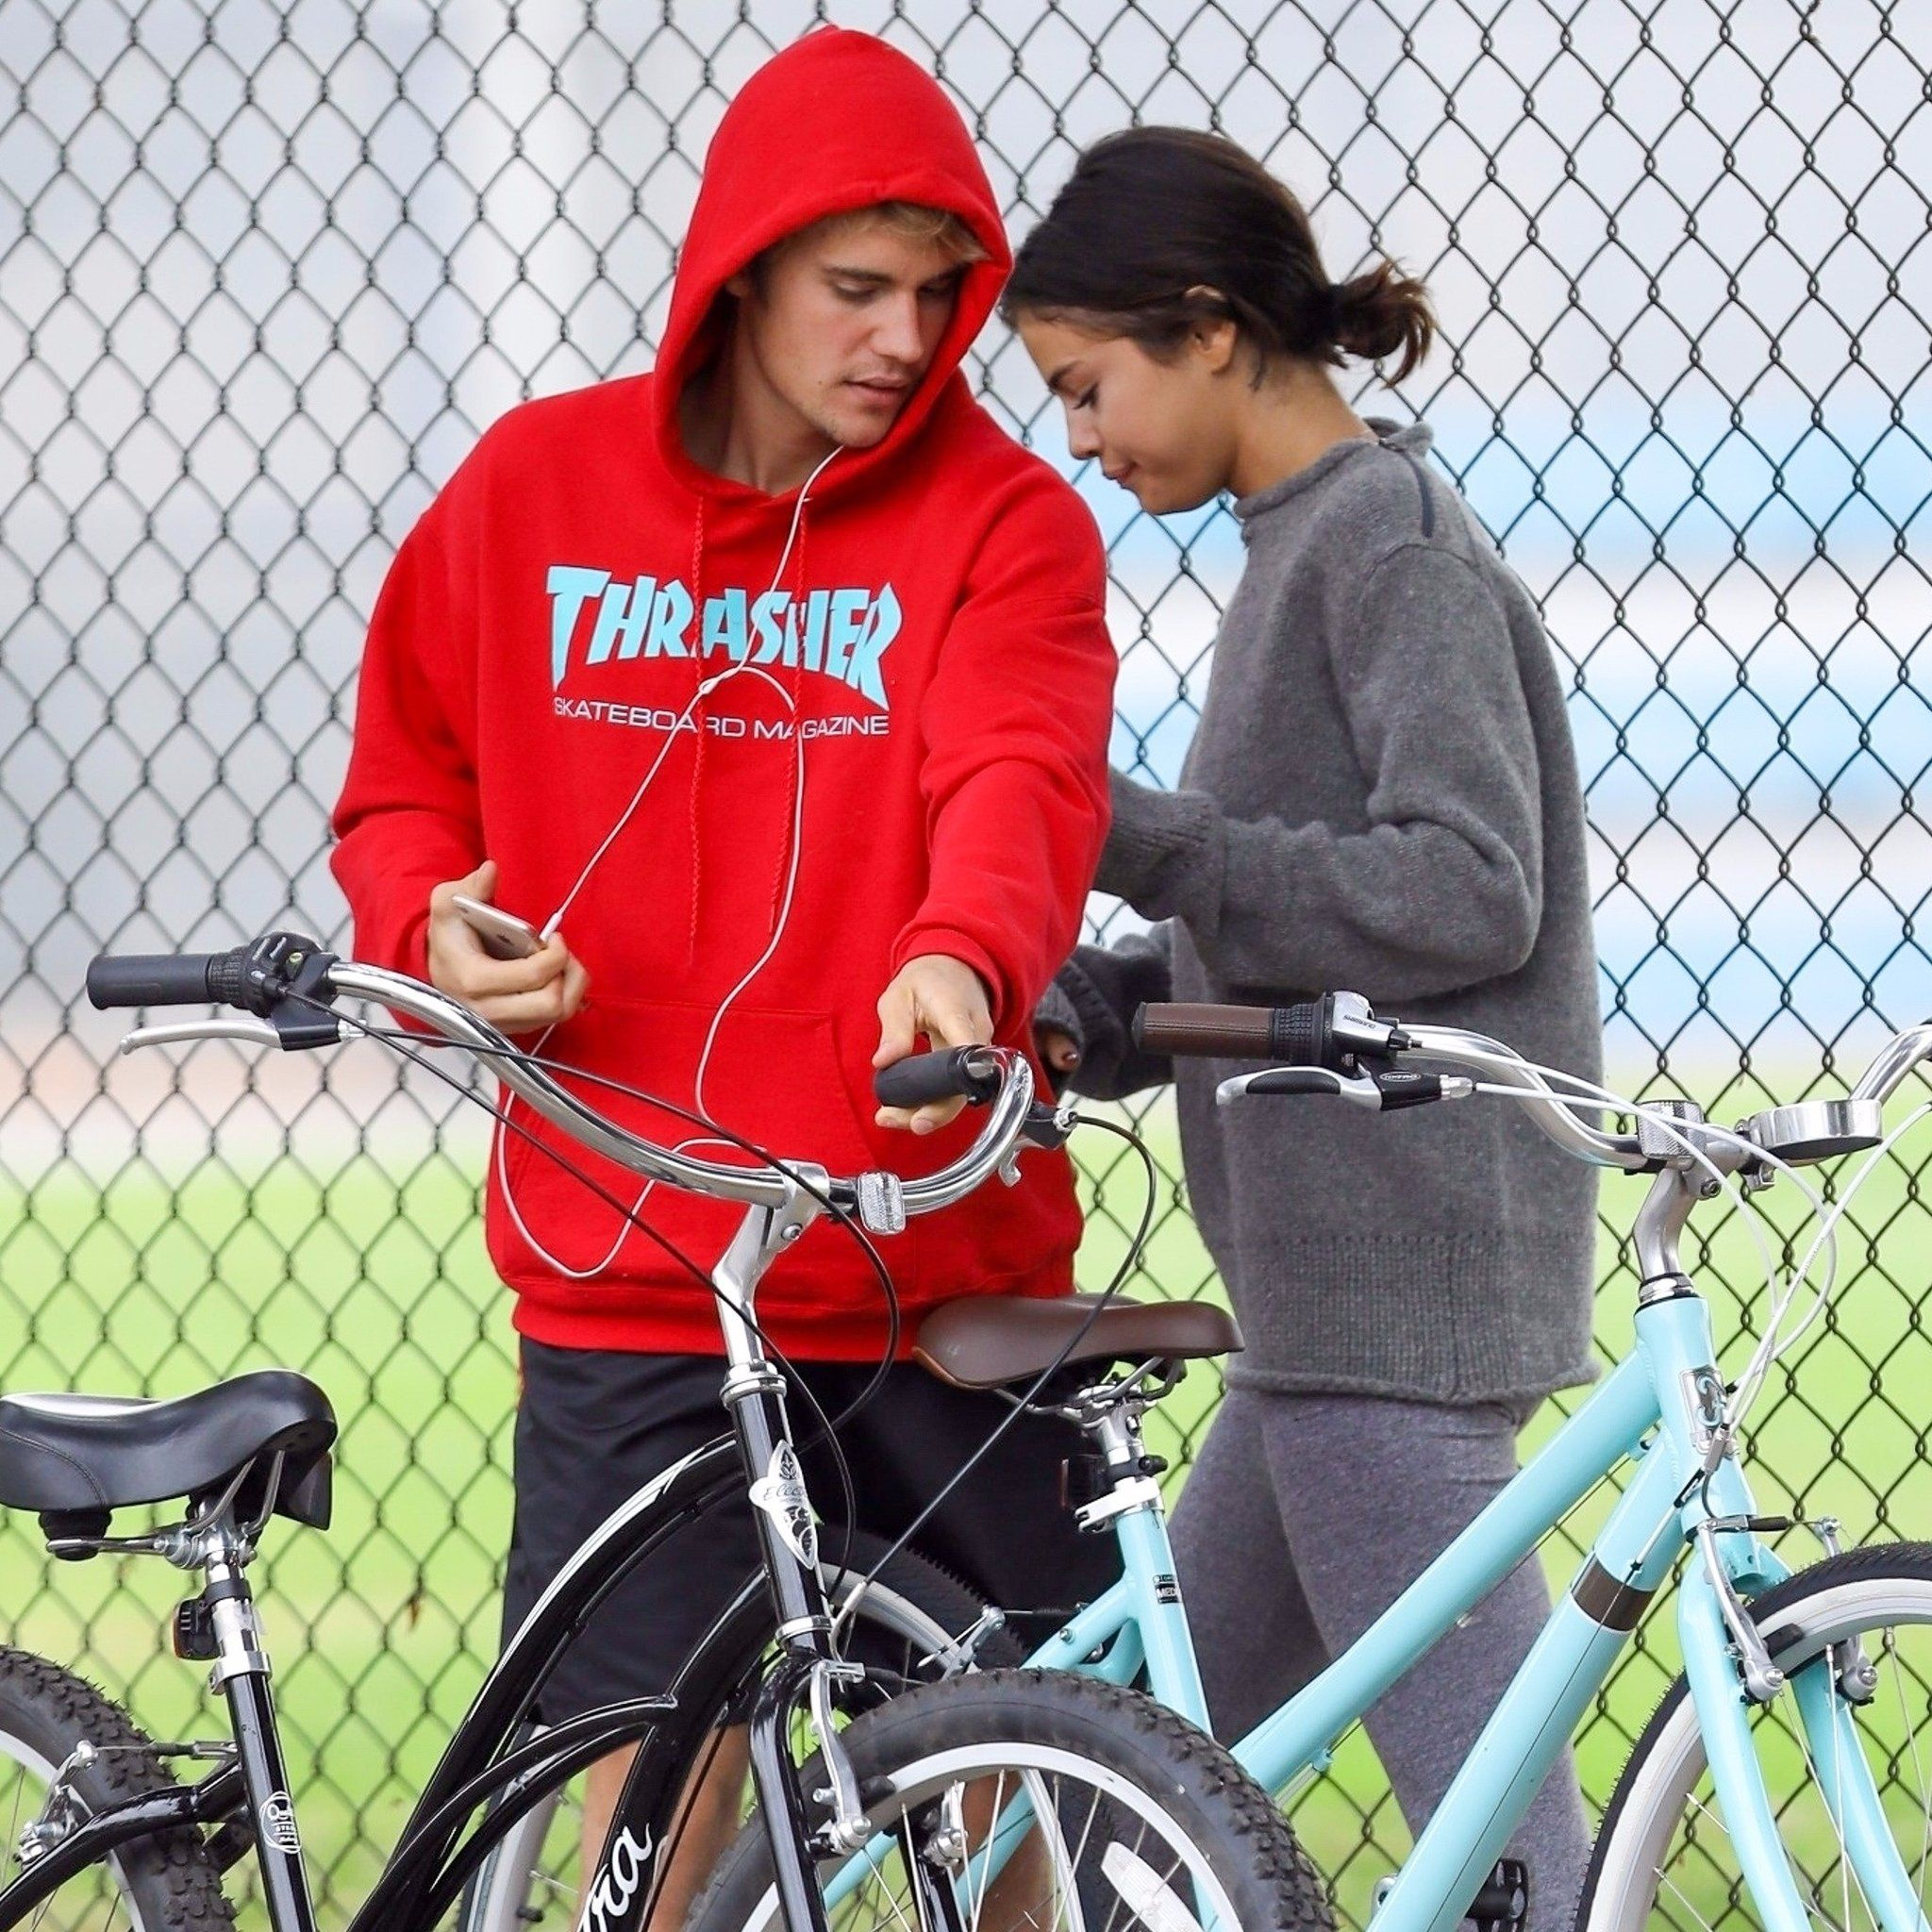 Selena Gomez and Justin Bieber with their bikes